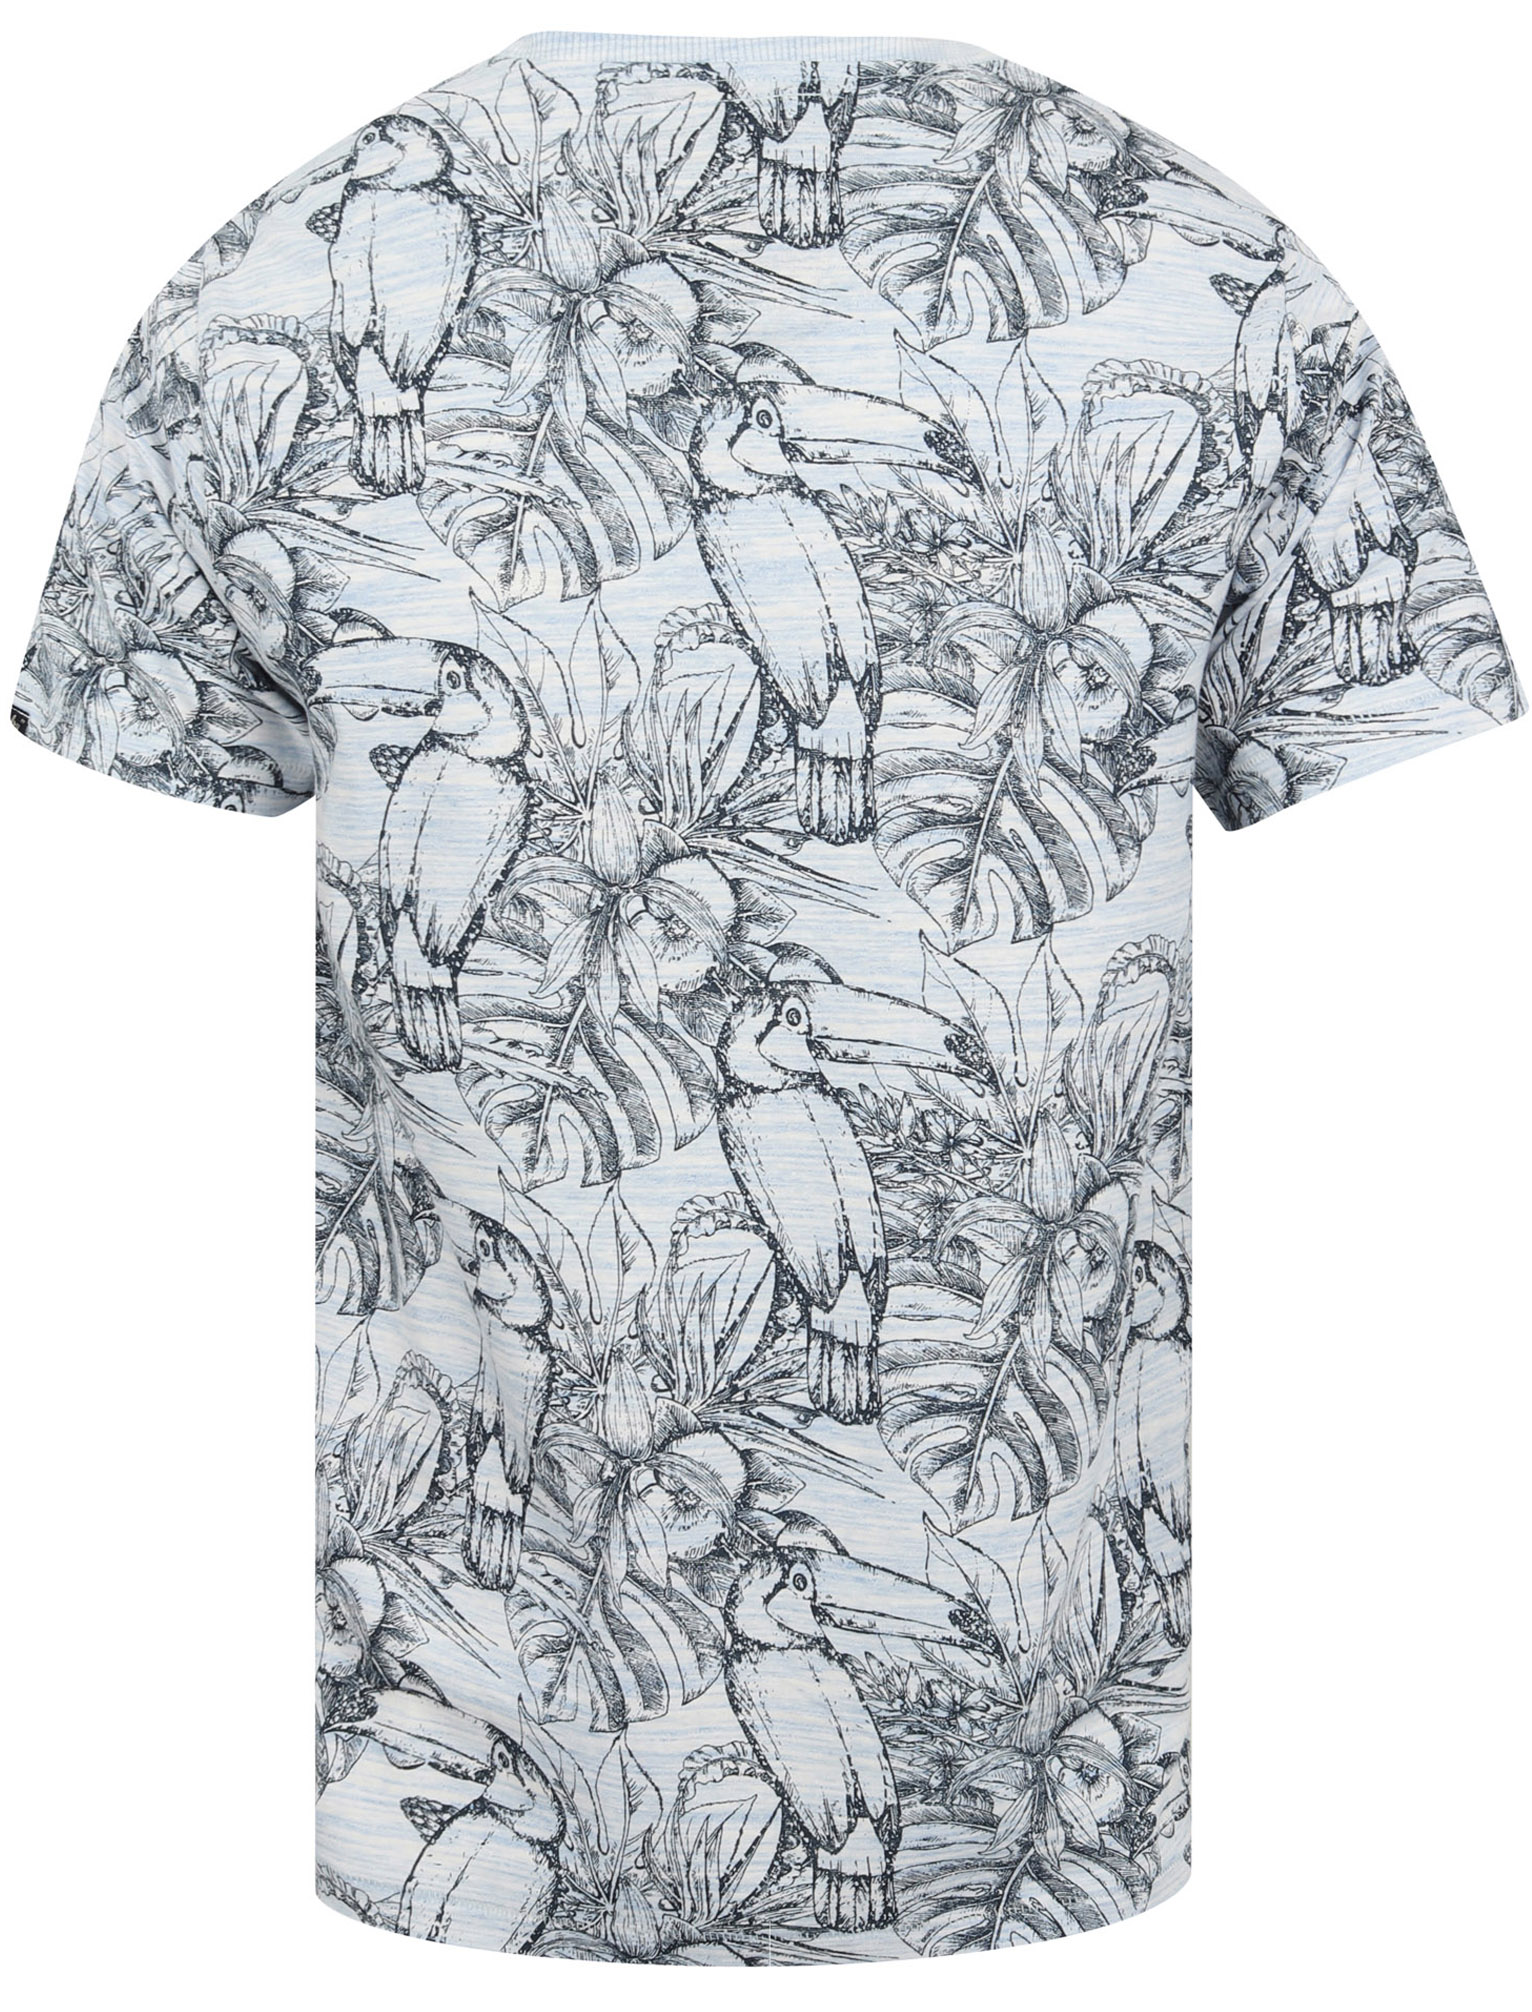 thumbnail 3 - Tokyo-Laundry-Tropical-Print-Crew-Neck-T-Shirt-Hawaiian-Floral-Summer-Holiday